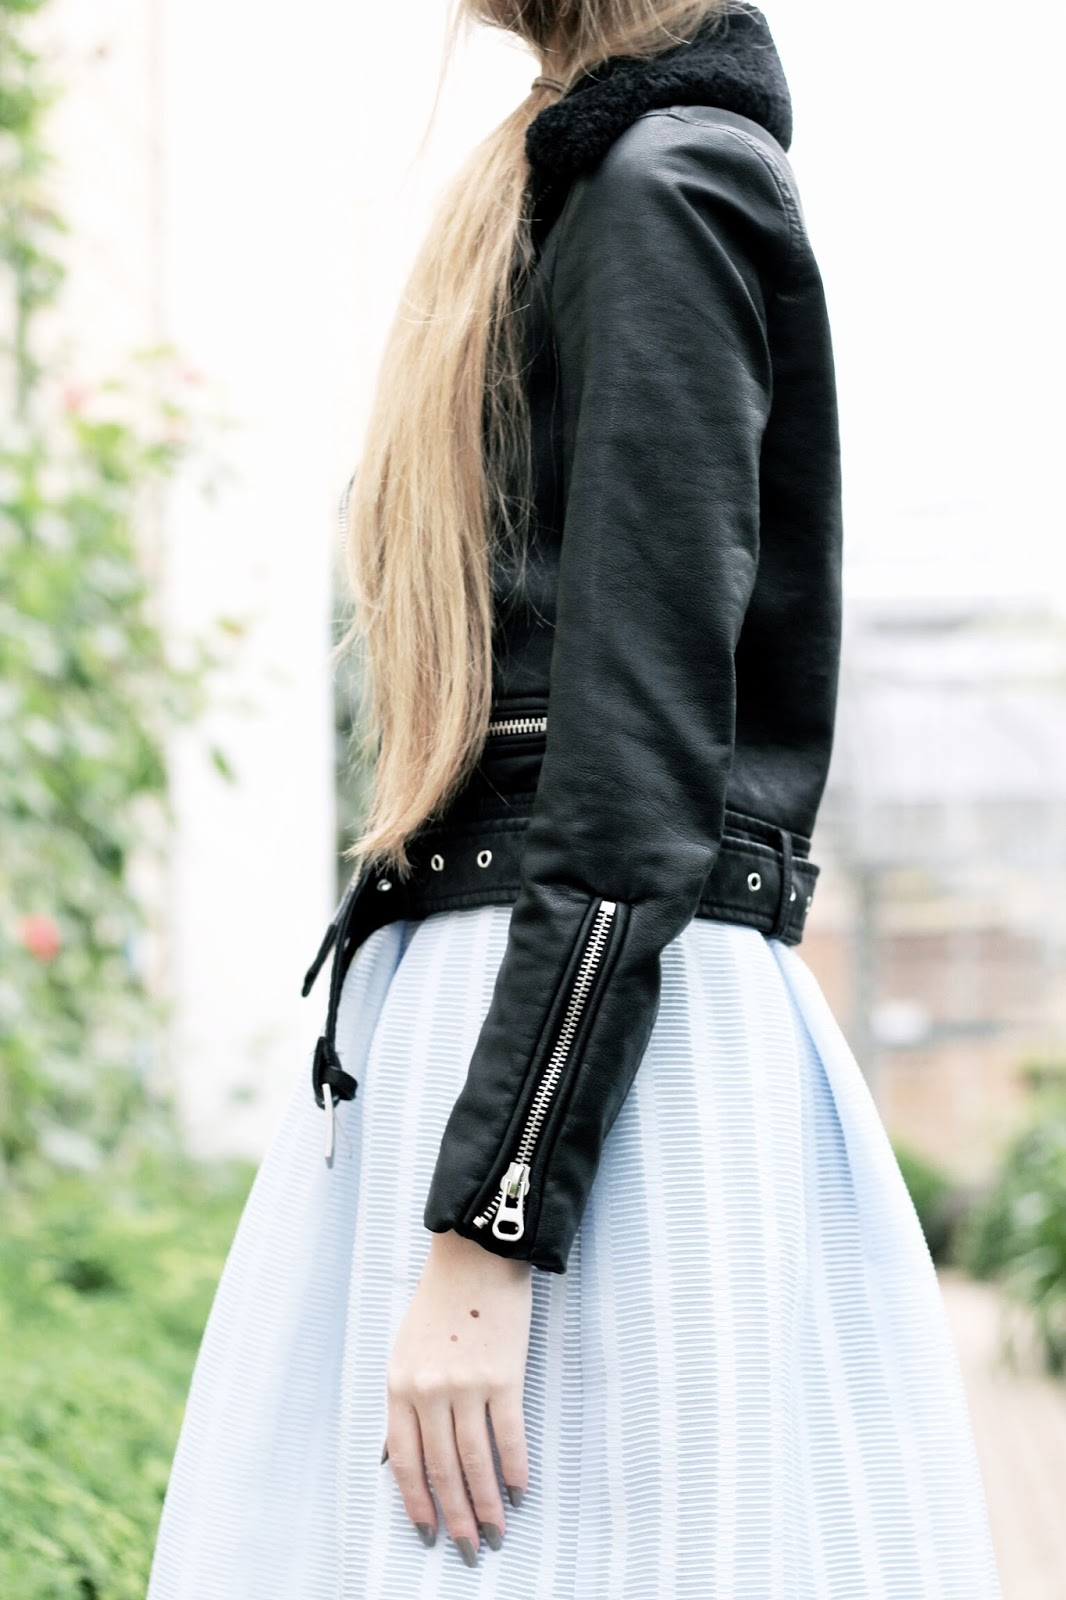 Styling a leather jacket with pretty dress